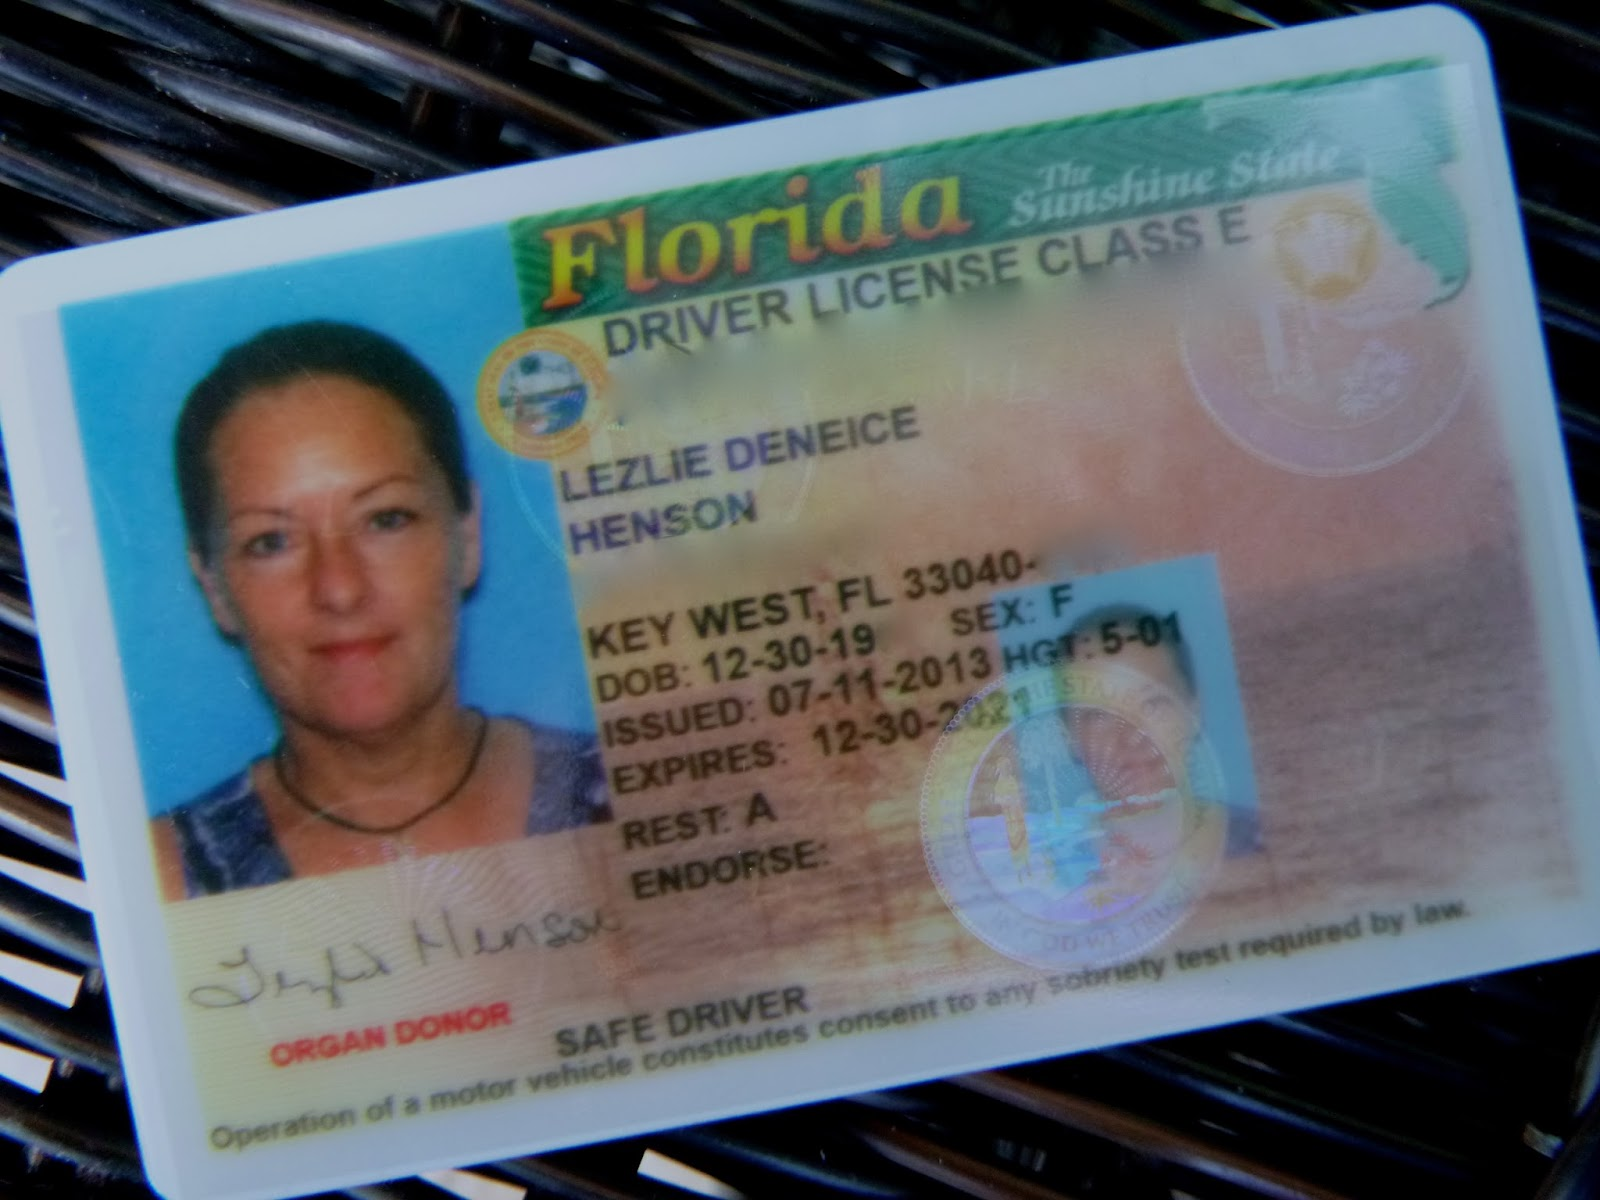 DMV Driver's License Handbooks & Manuals | DMV.ORG